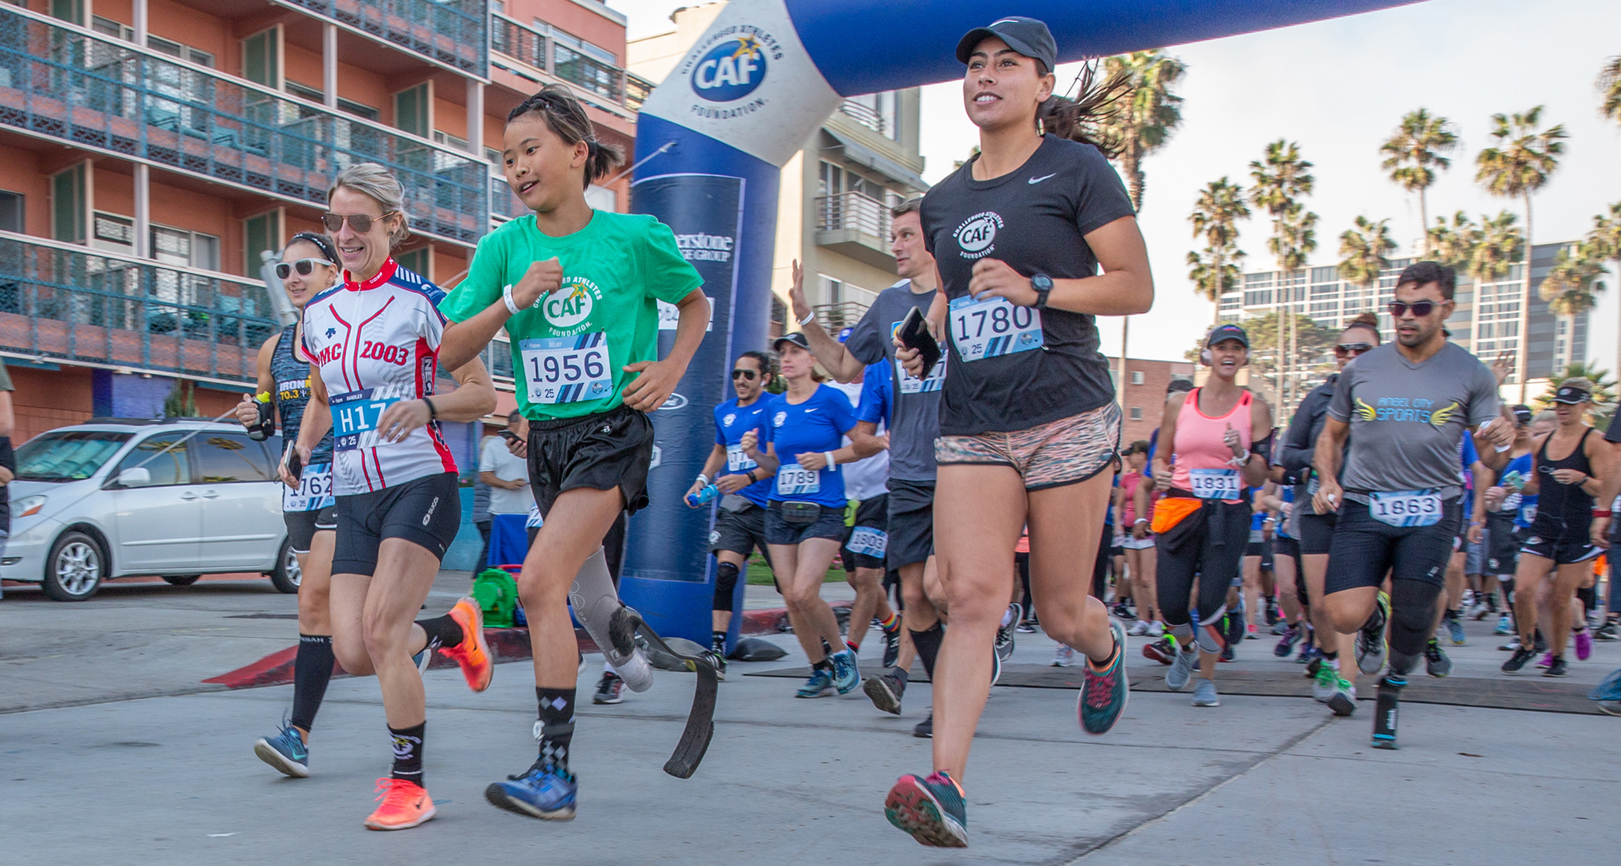 Runners at the 2018 San Diego Triathlon Challenge